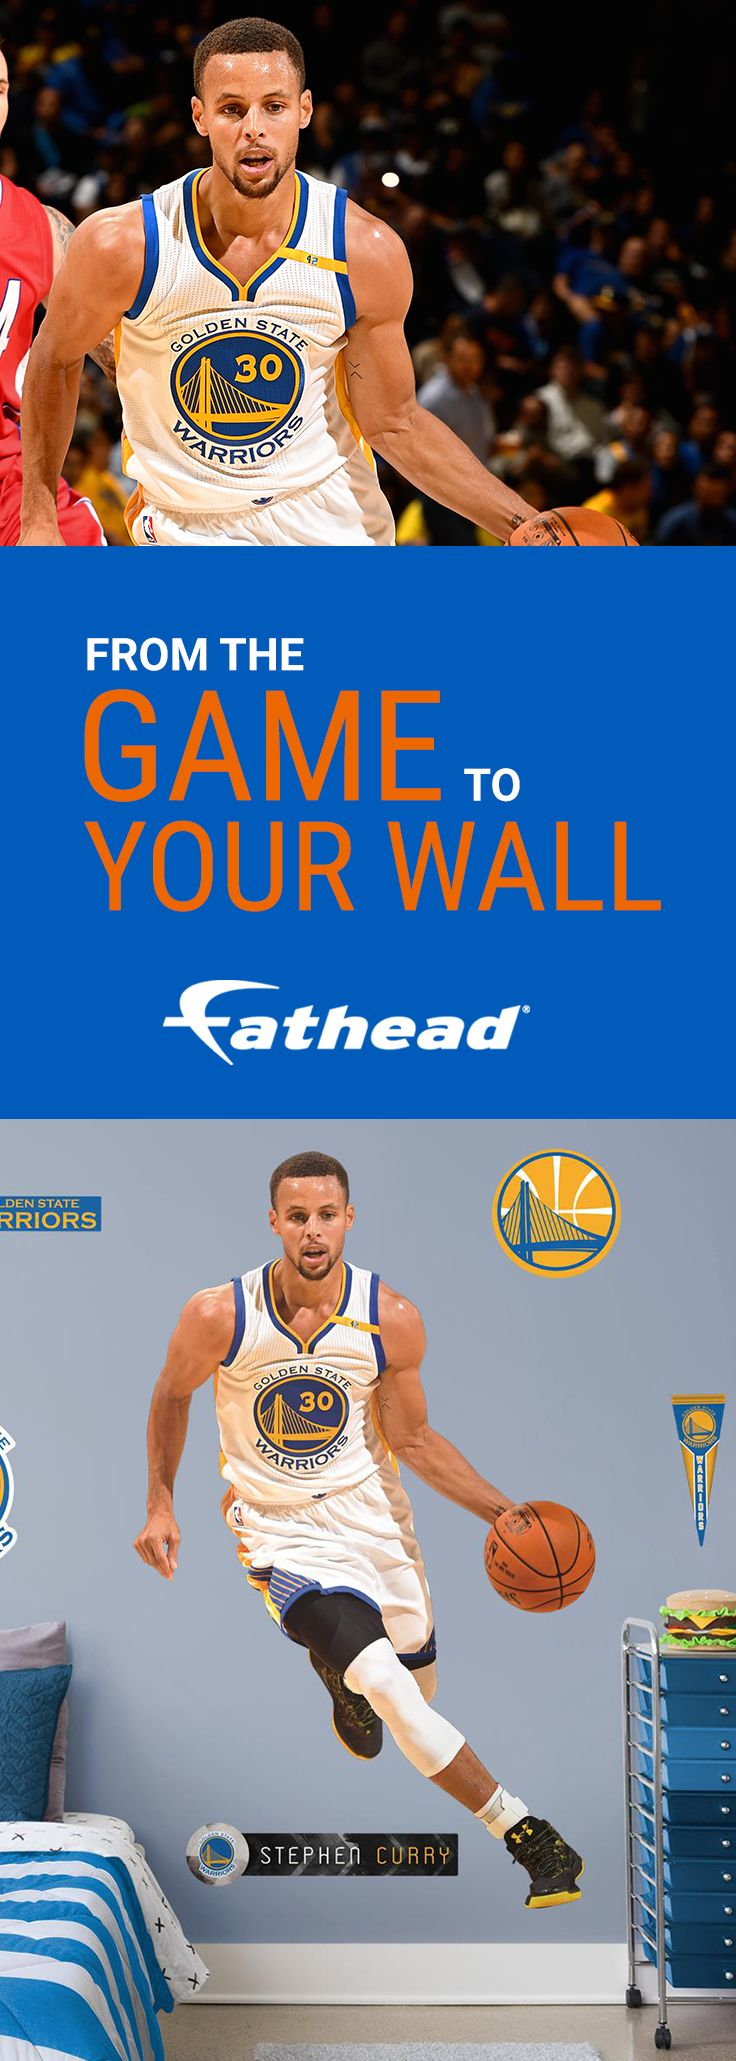 "Give the gift of a Steph Curry Fathead to the sports fan in your life. Whether it's your dad, brother, son, boyfriend, or girlfriend, they can remember Stephen Curry's best moments with a REAL.BIG. Fathead. The Golden State Warriors' Steph Curry life-size wall decal is easy to apply and can be removed without any damage to your wall. Purchase the Steph Curry wall decal or any of your favorite NBA player Fatheads today! Size: 3'11""W X 6'5""H."